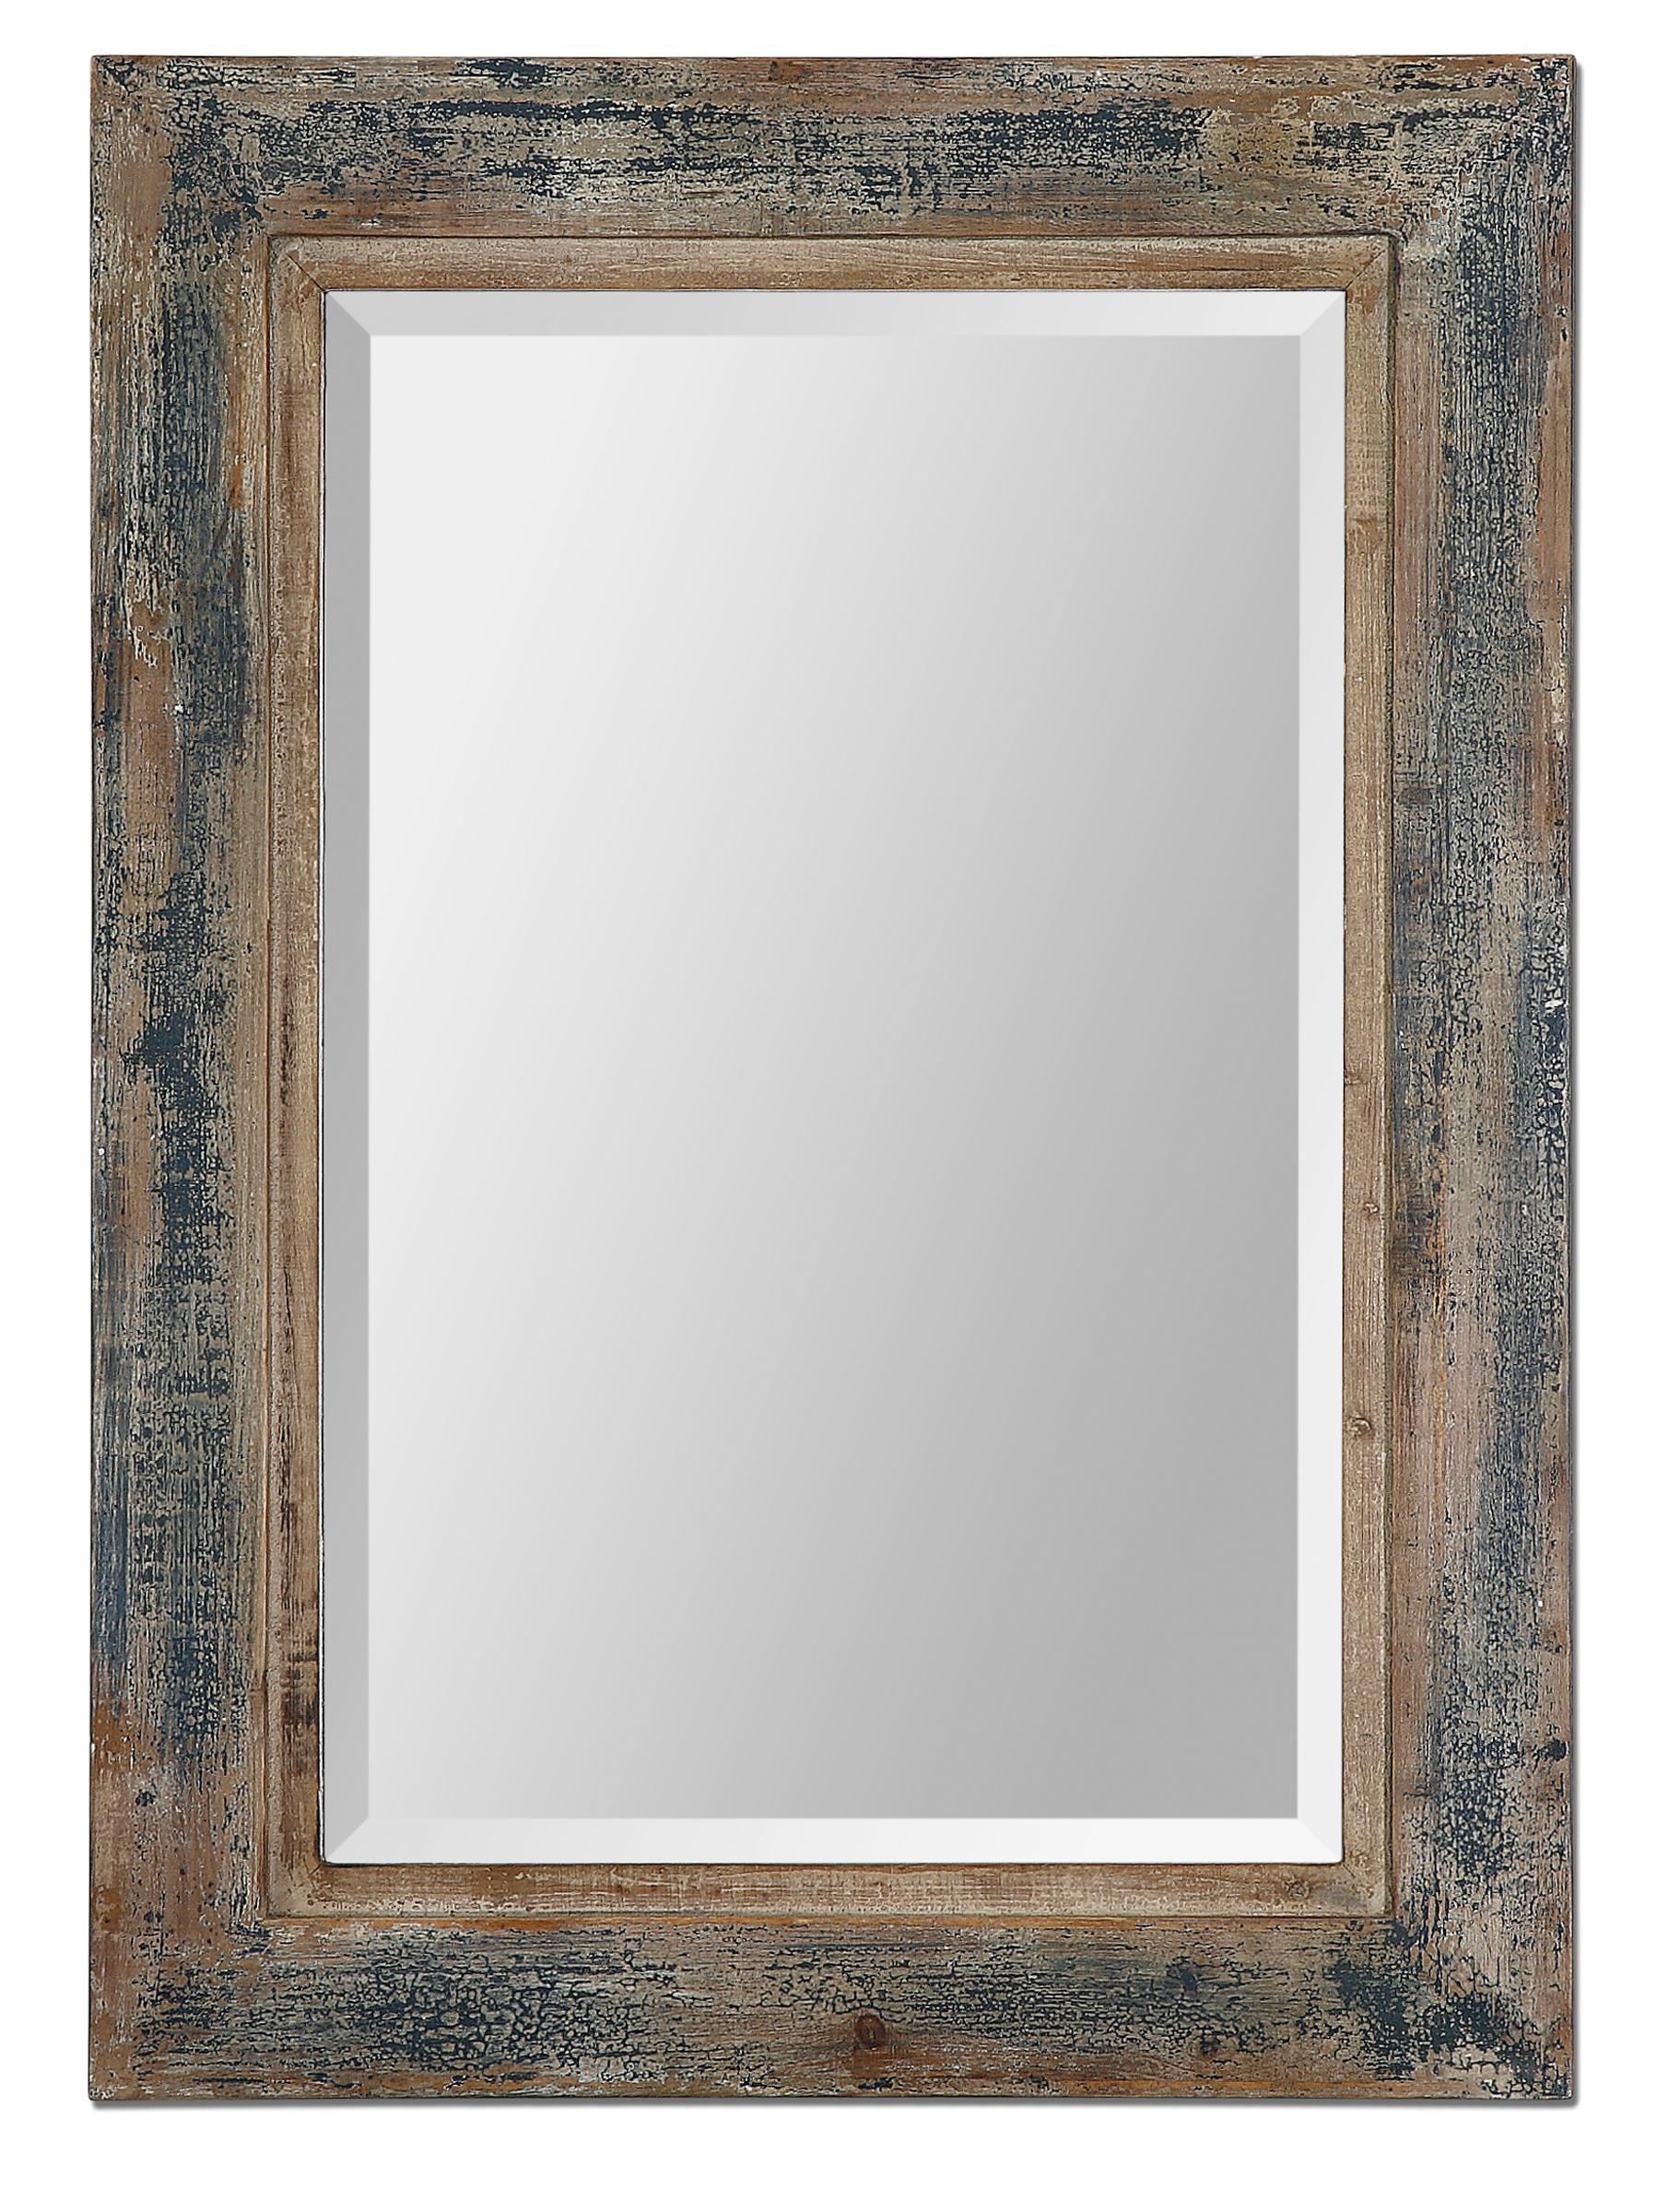 Uttermost Mirrors Bozeman - Item Number: 13829